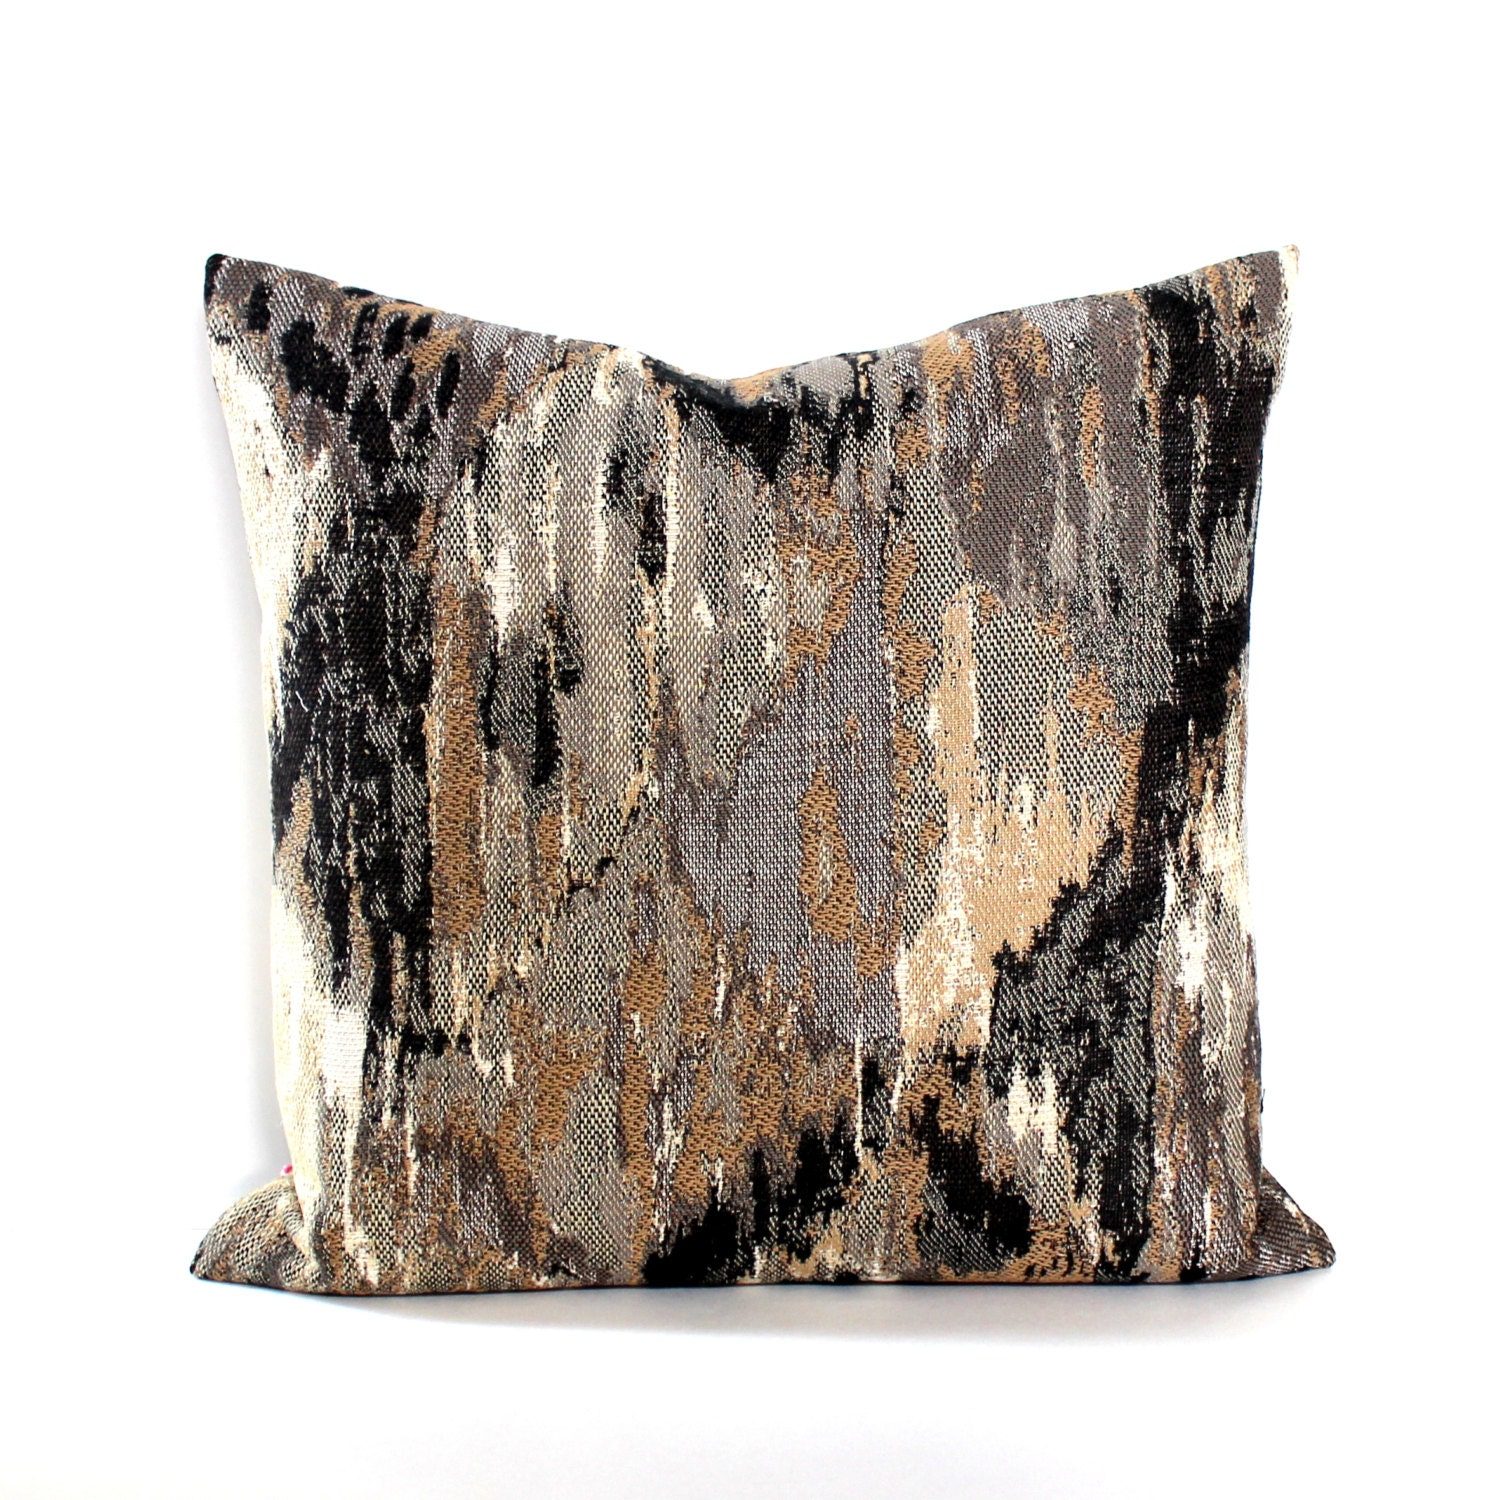 18x18 Black Brown Grey Beige Abstract Decorative Accent Throw